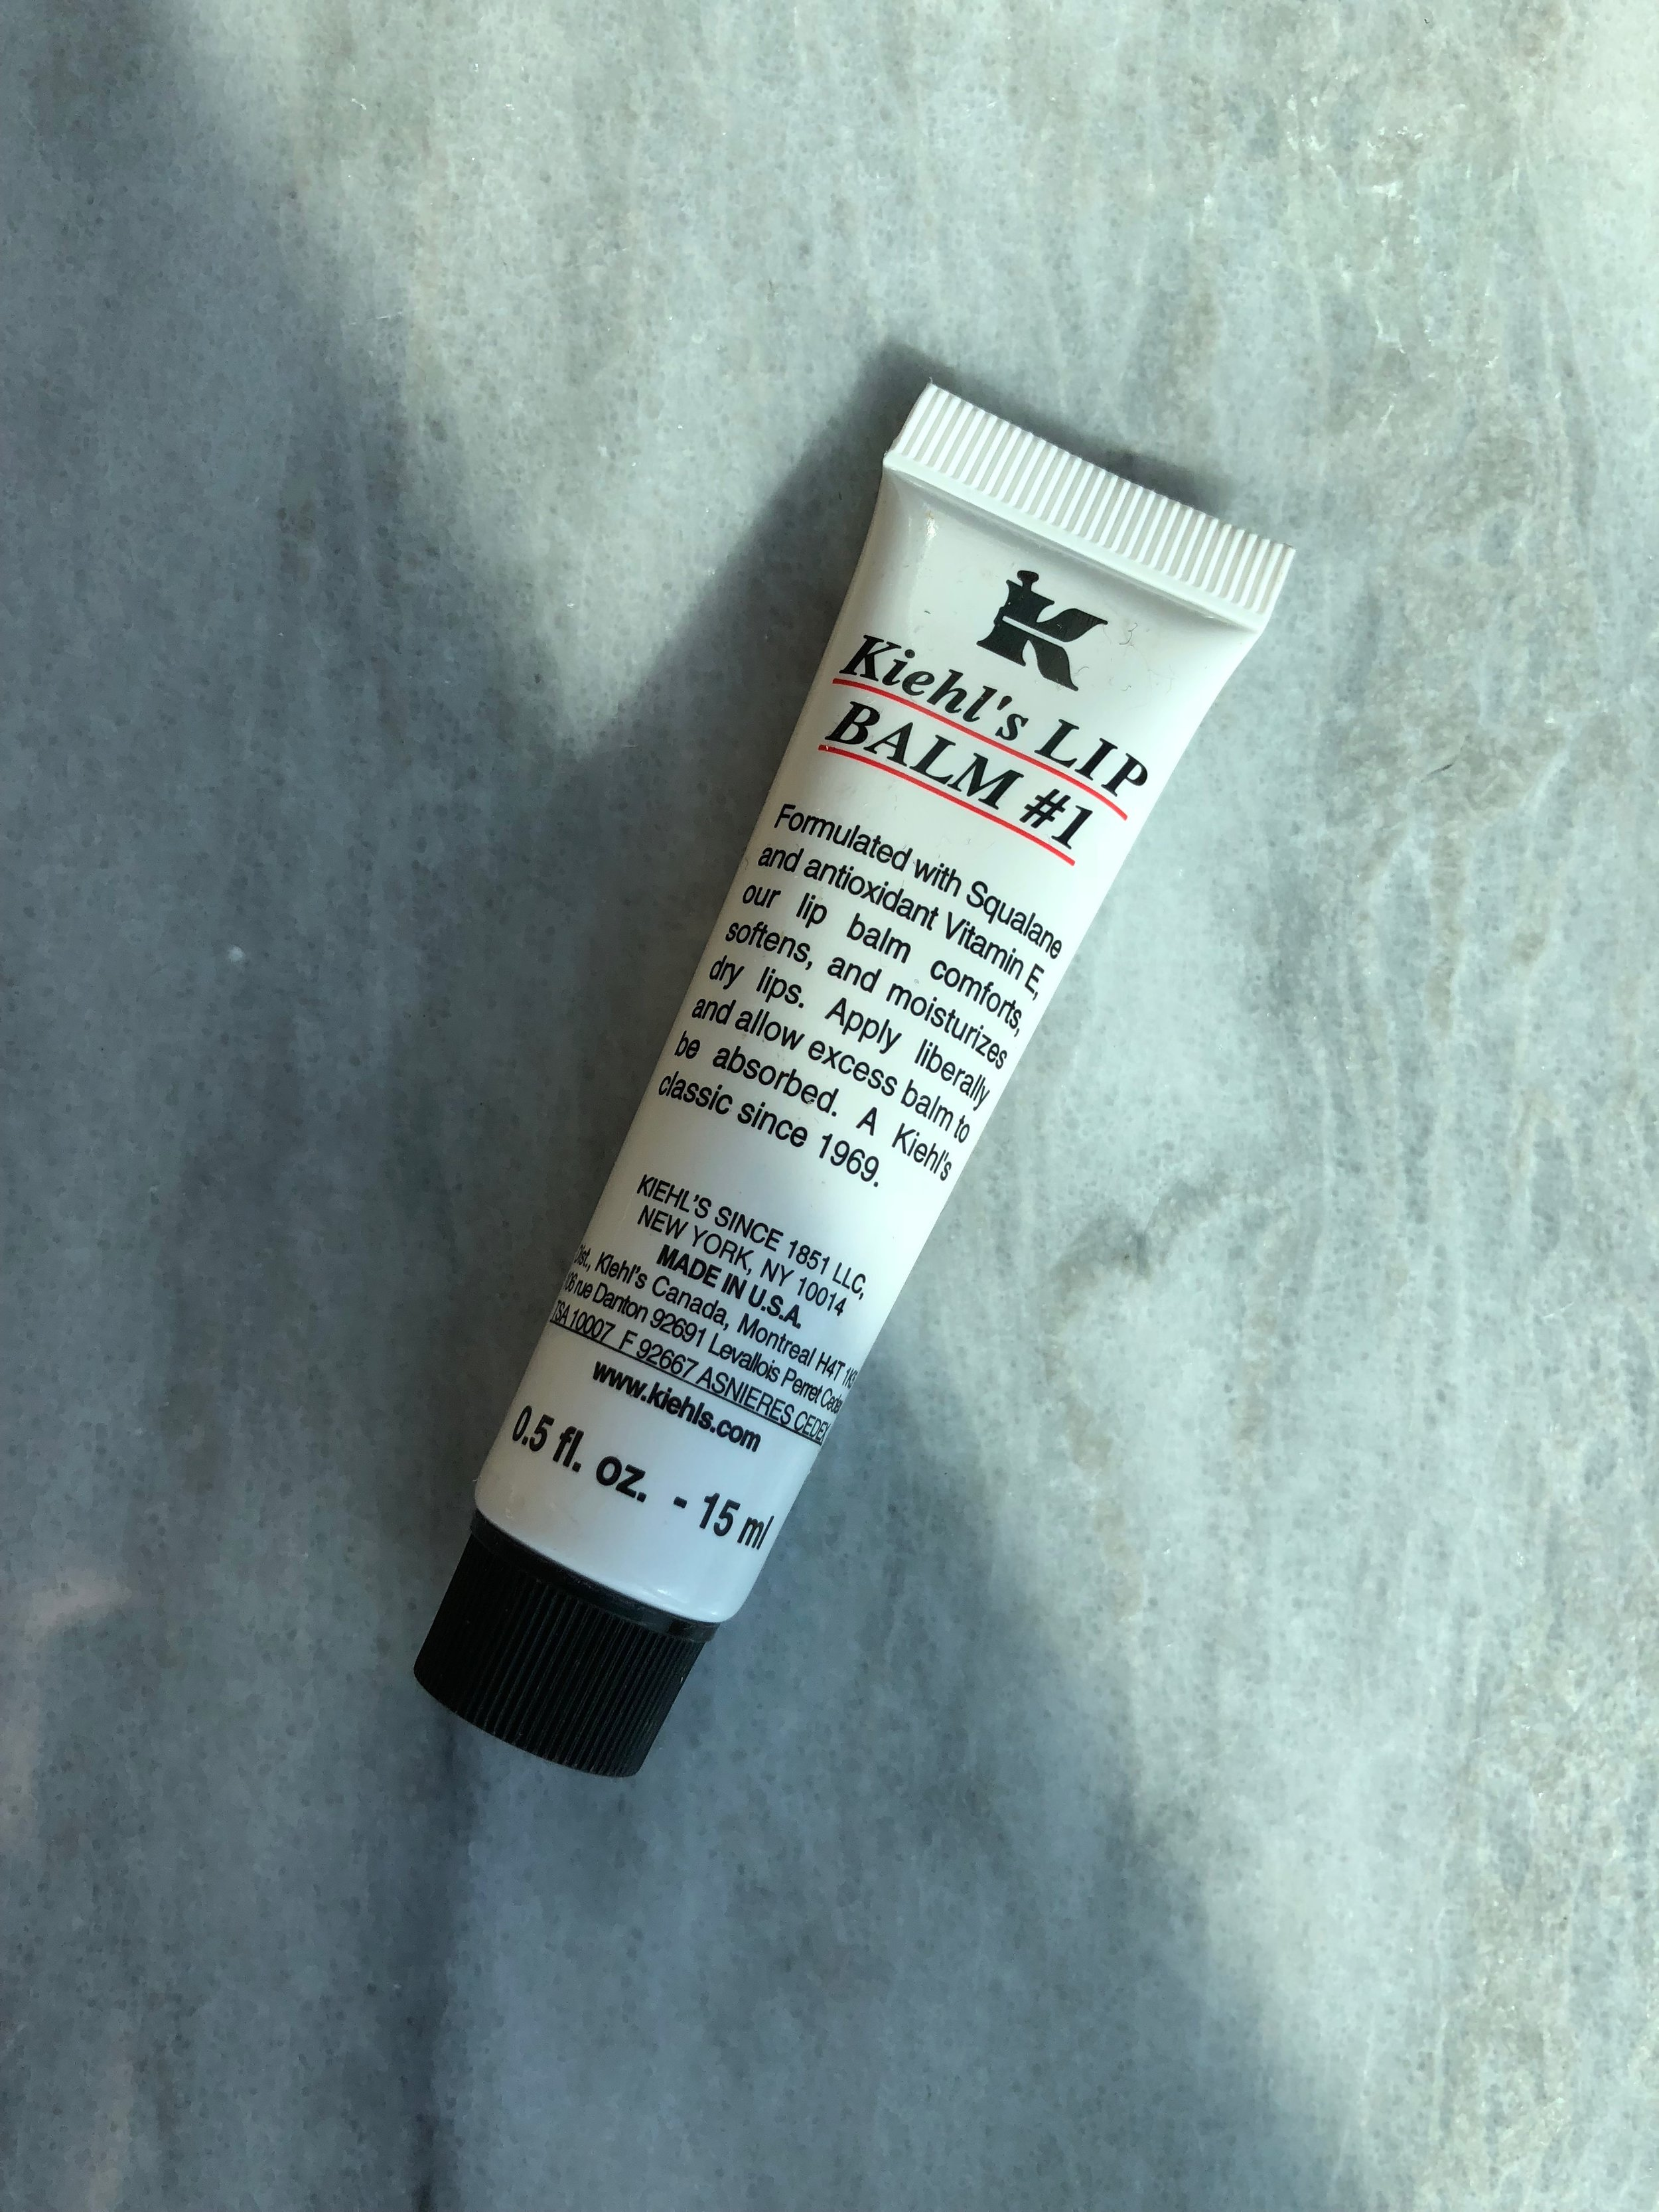 Kiehl's iconic Lip Balm #1 was first introduced to customers of the Original Flagship store in the early 60s.